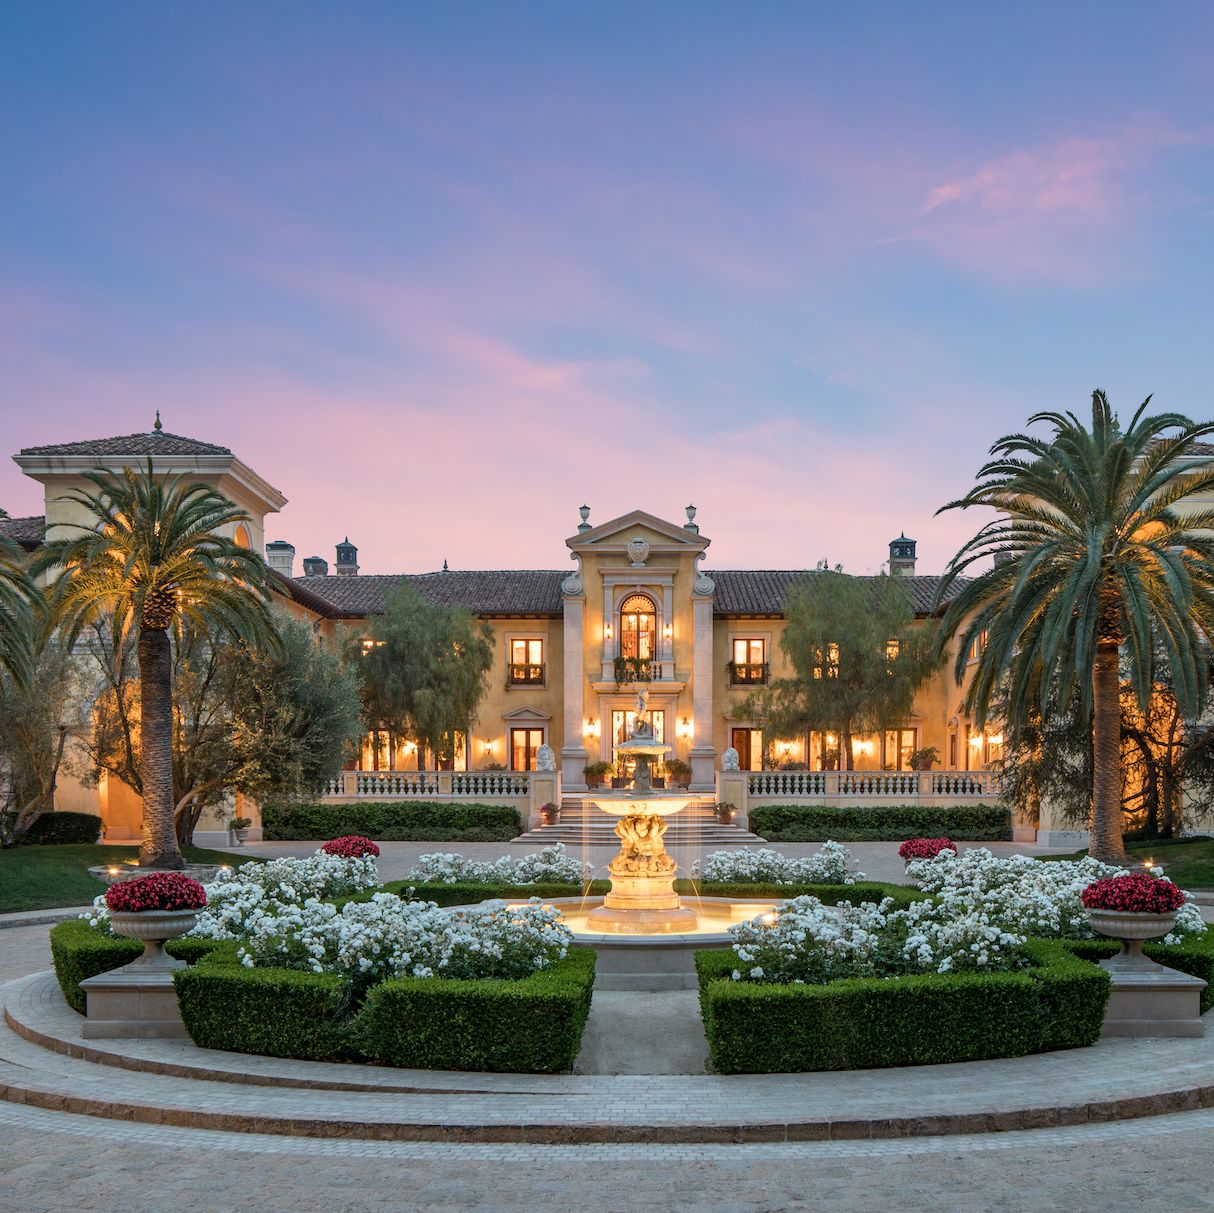 The Most Expensive Home to Hit the Auction Block in the U.S. at $160 Million Just Sold, but for Only $60 Million